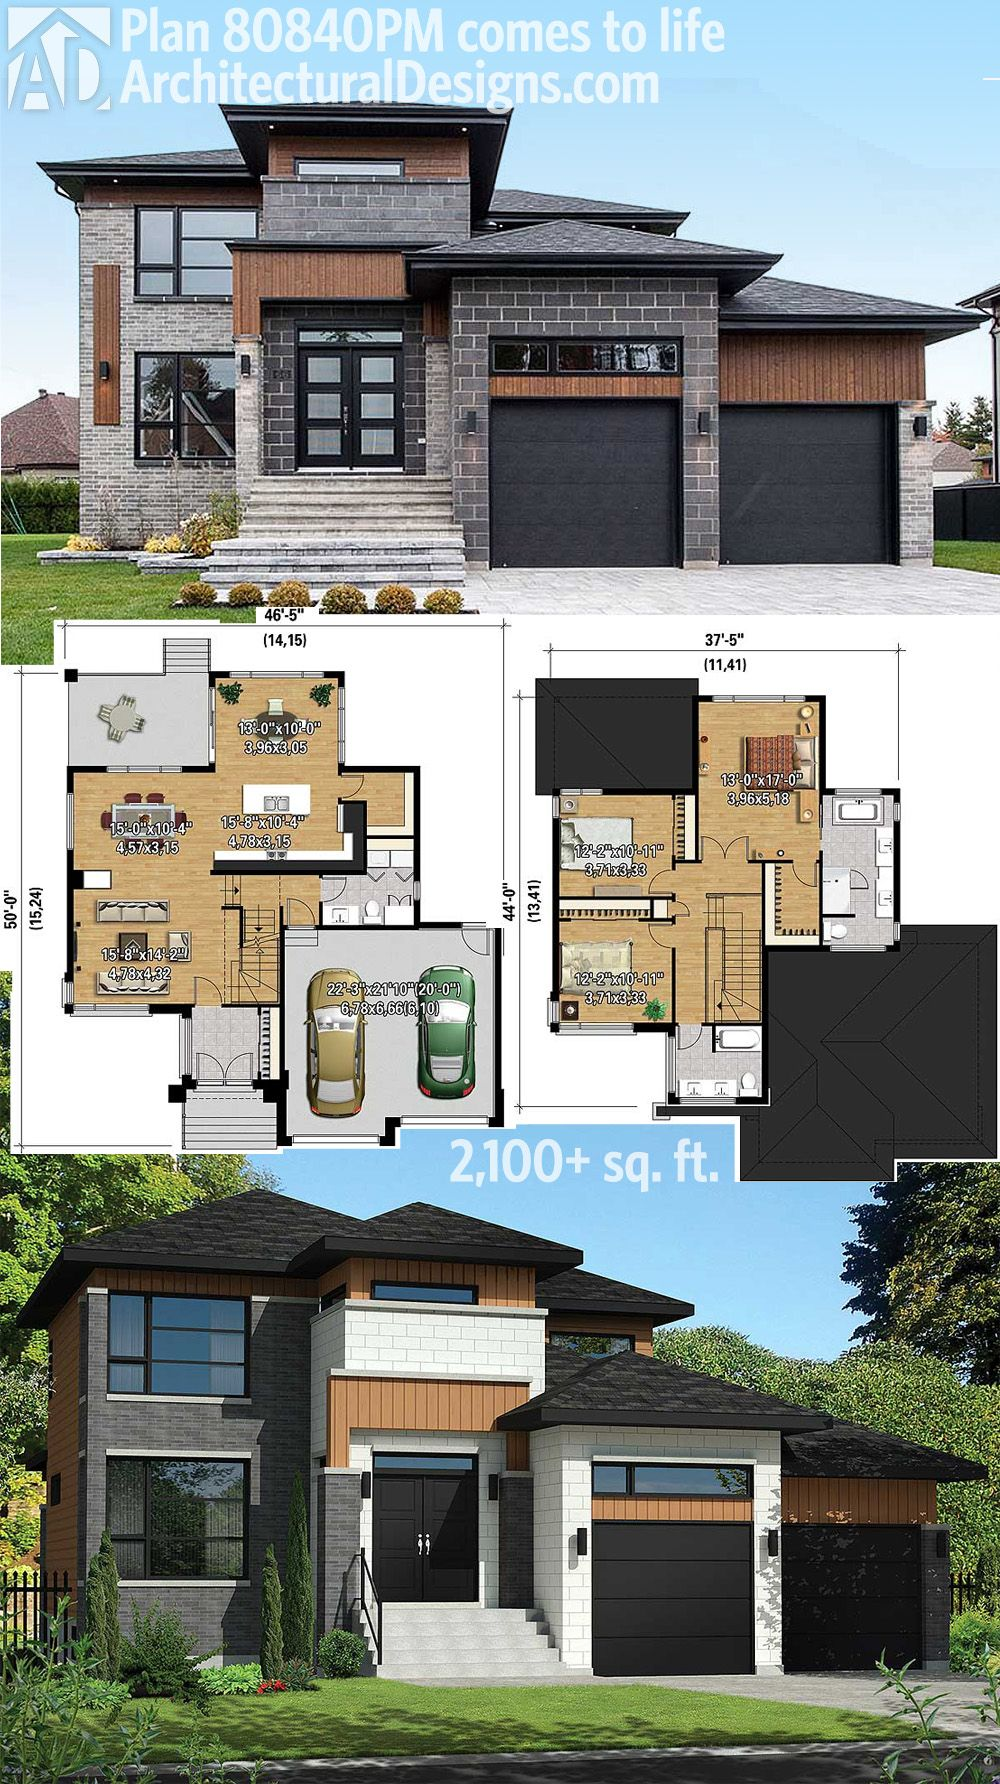 Plan For House plans with plain modern home floor color colored house floor property site Architectural Designs Modern House Plan 80840pm Gives You Over 2100 Square Feet Of Living With 3